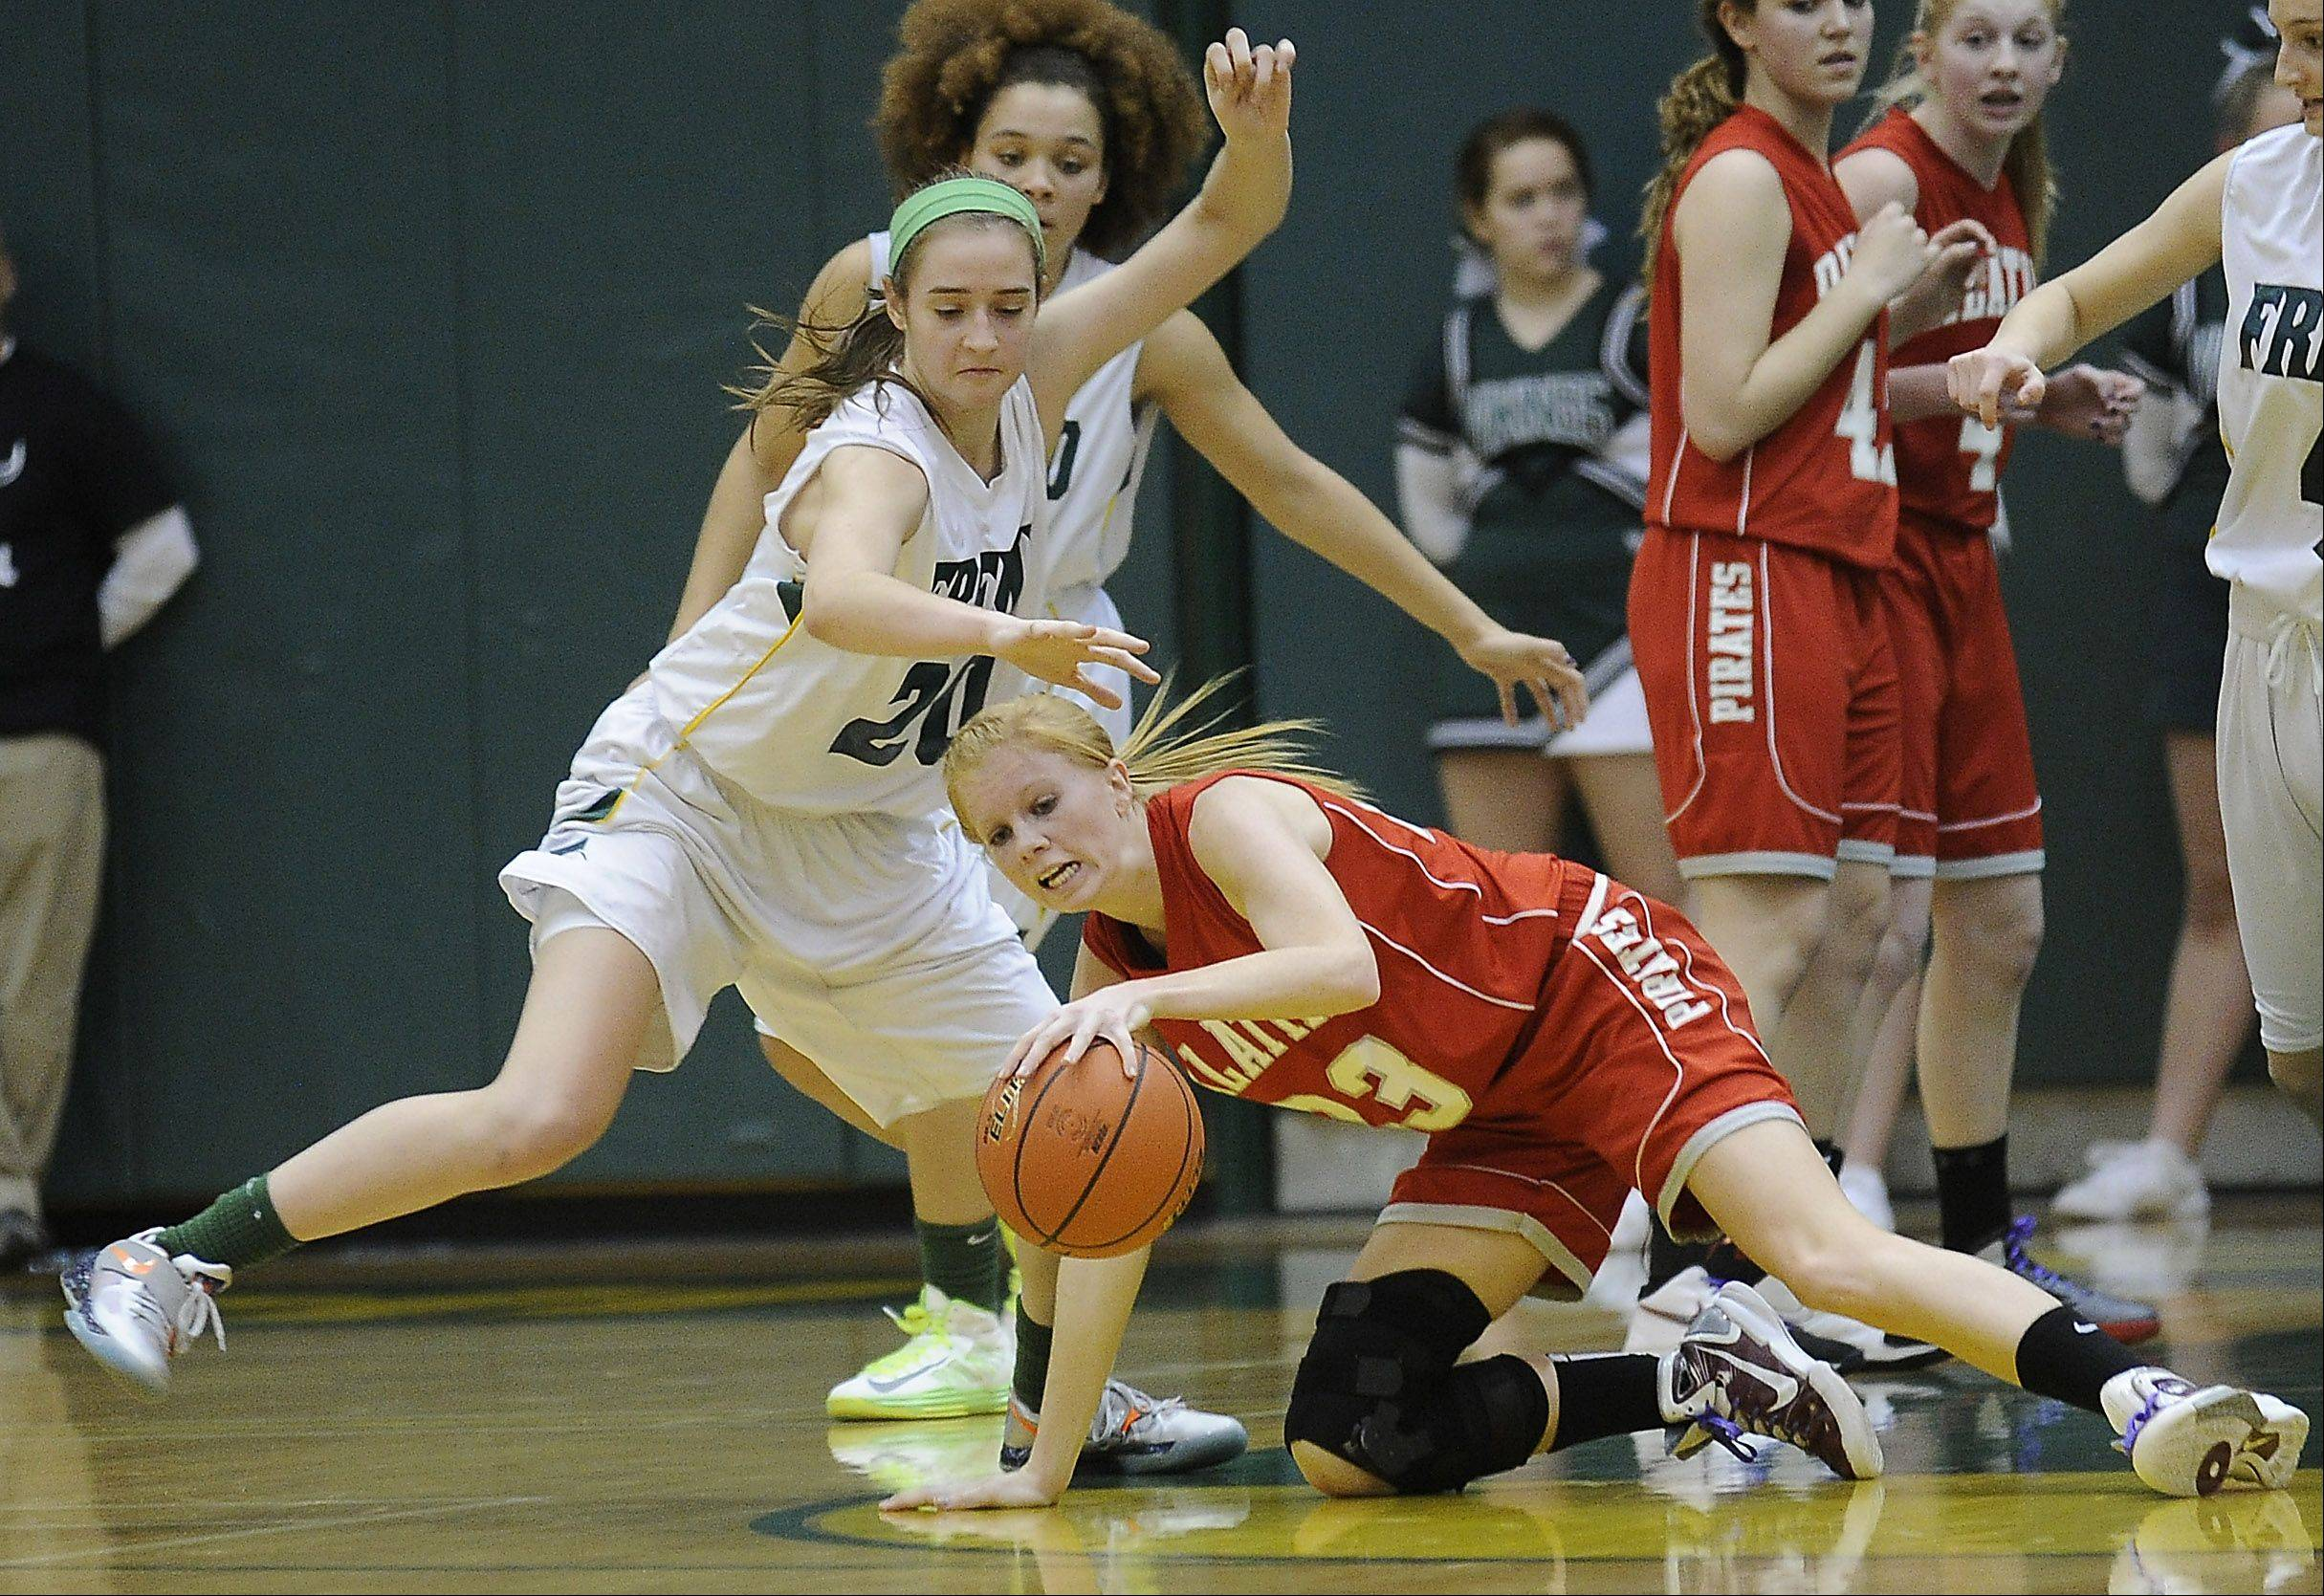 Palatine's McKenzie Wiedemann tries to control the ball under pressure against Fremd.